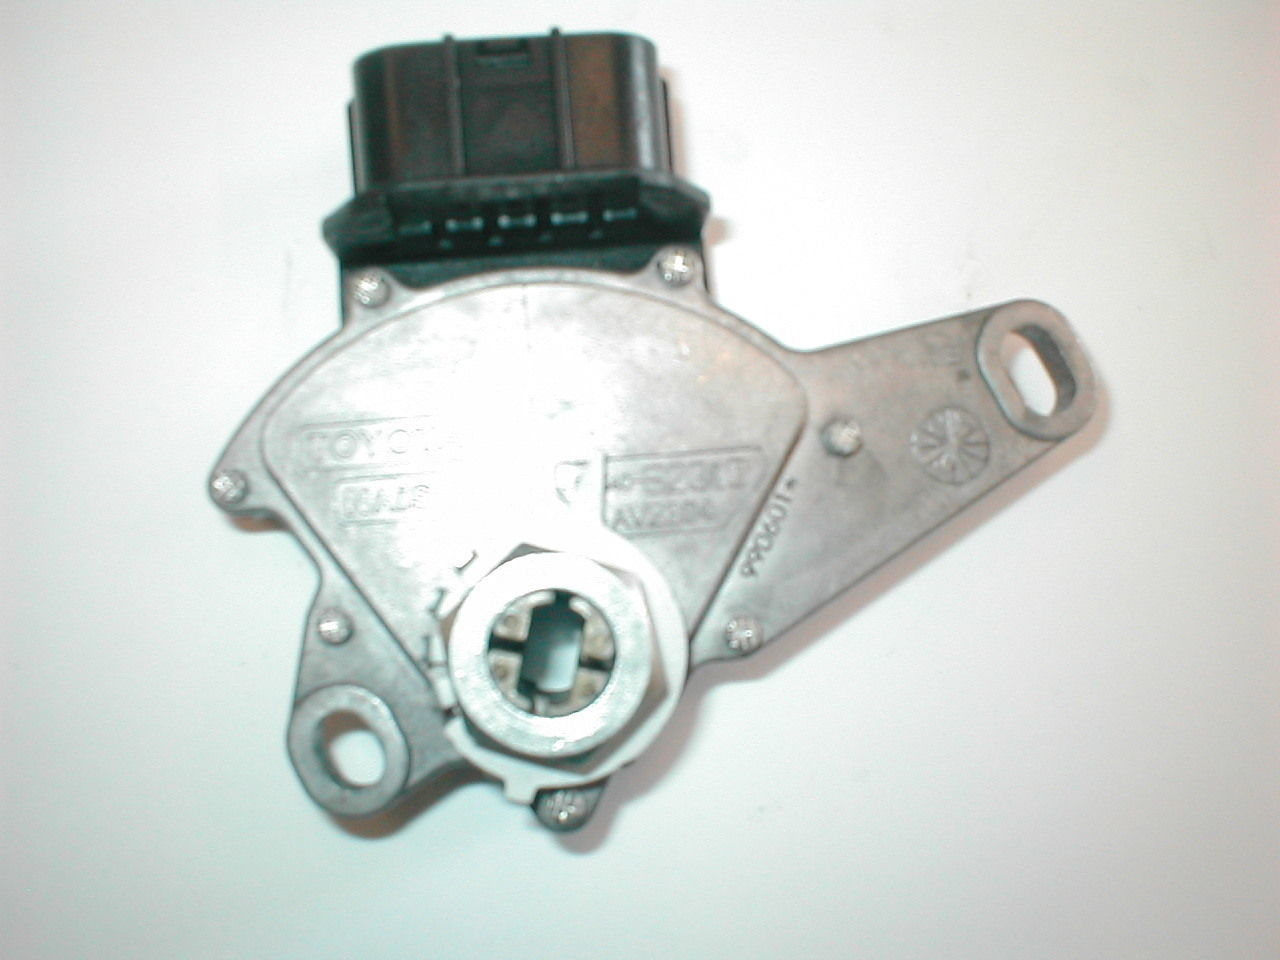 1999-2002 Toyota Corolla neutral safety gear and 50 similar